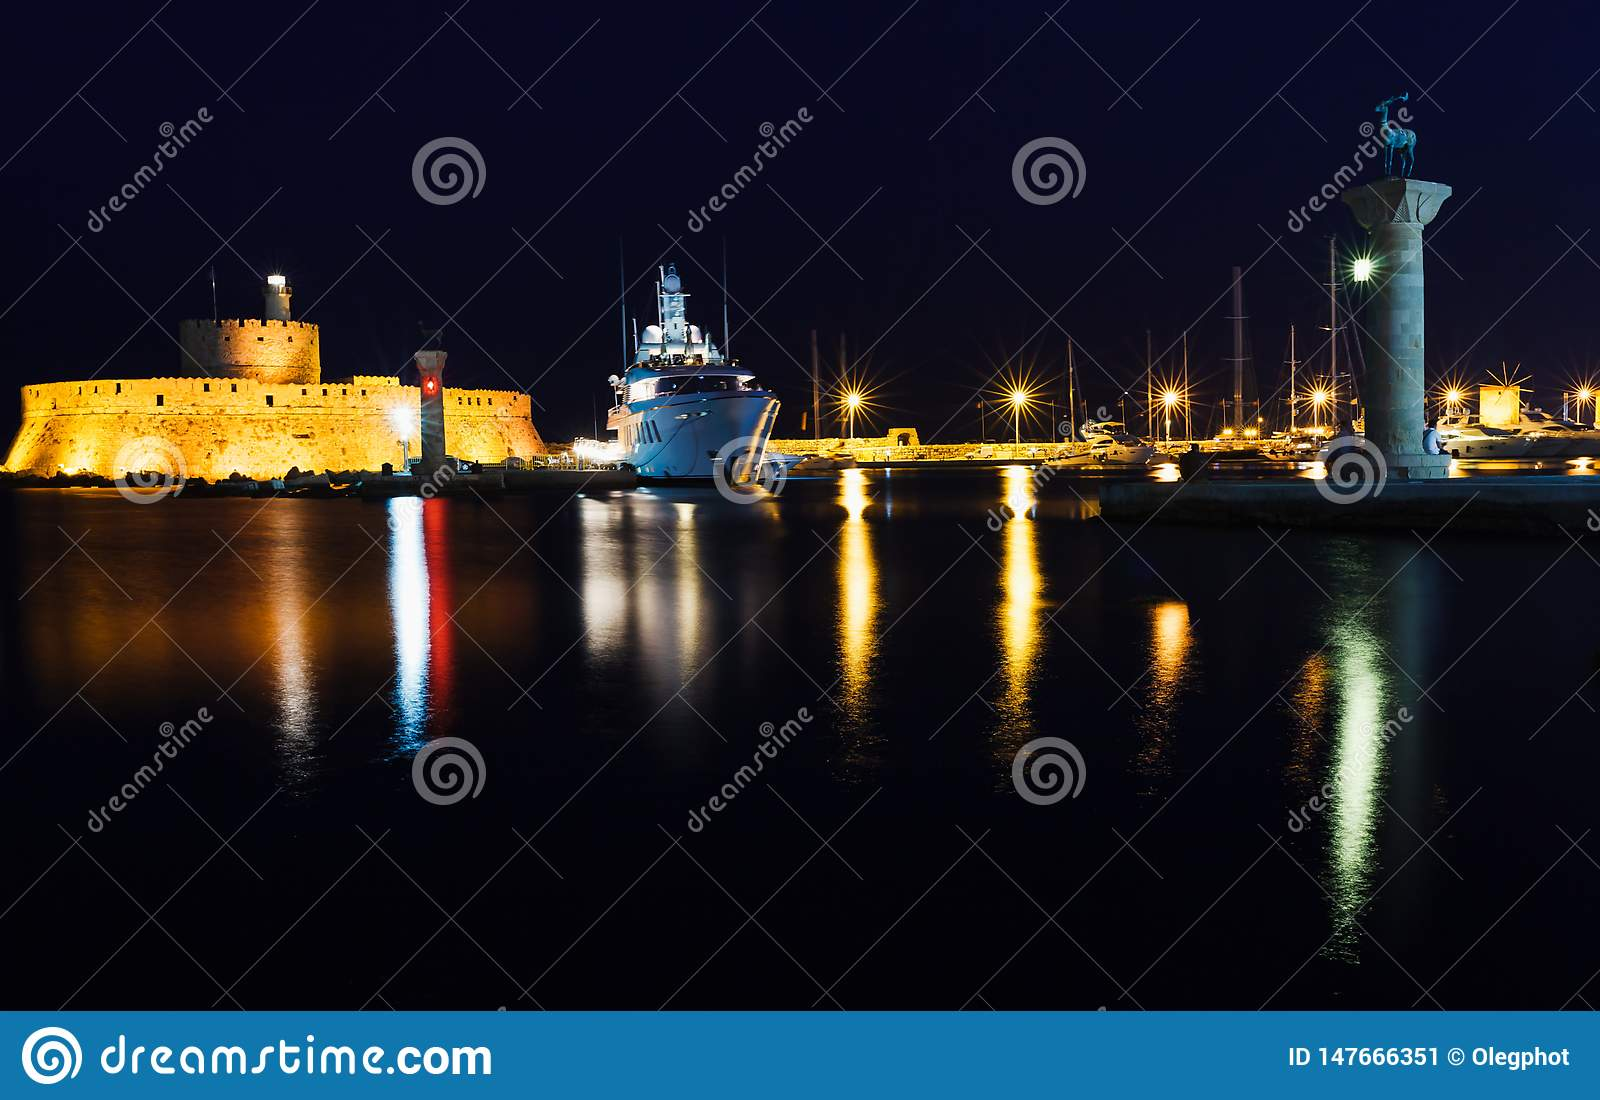 Night photo of ancient fortress and pier in Rhodes city on Rhodes island, Dodecanese, Greece. Stone walls and bright night lights